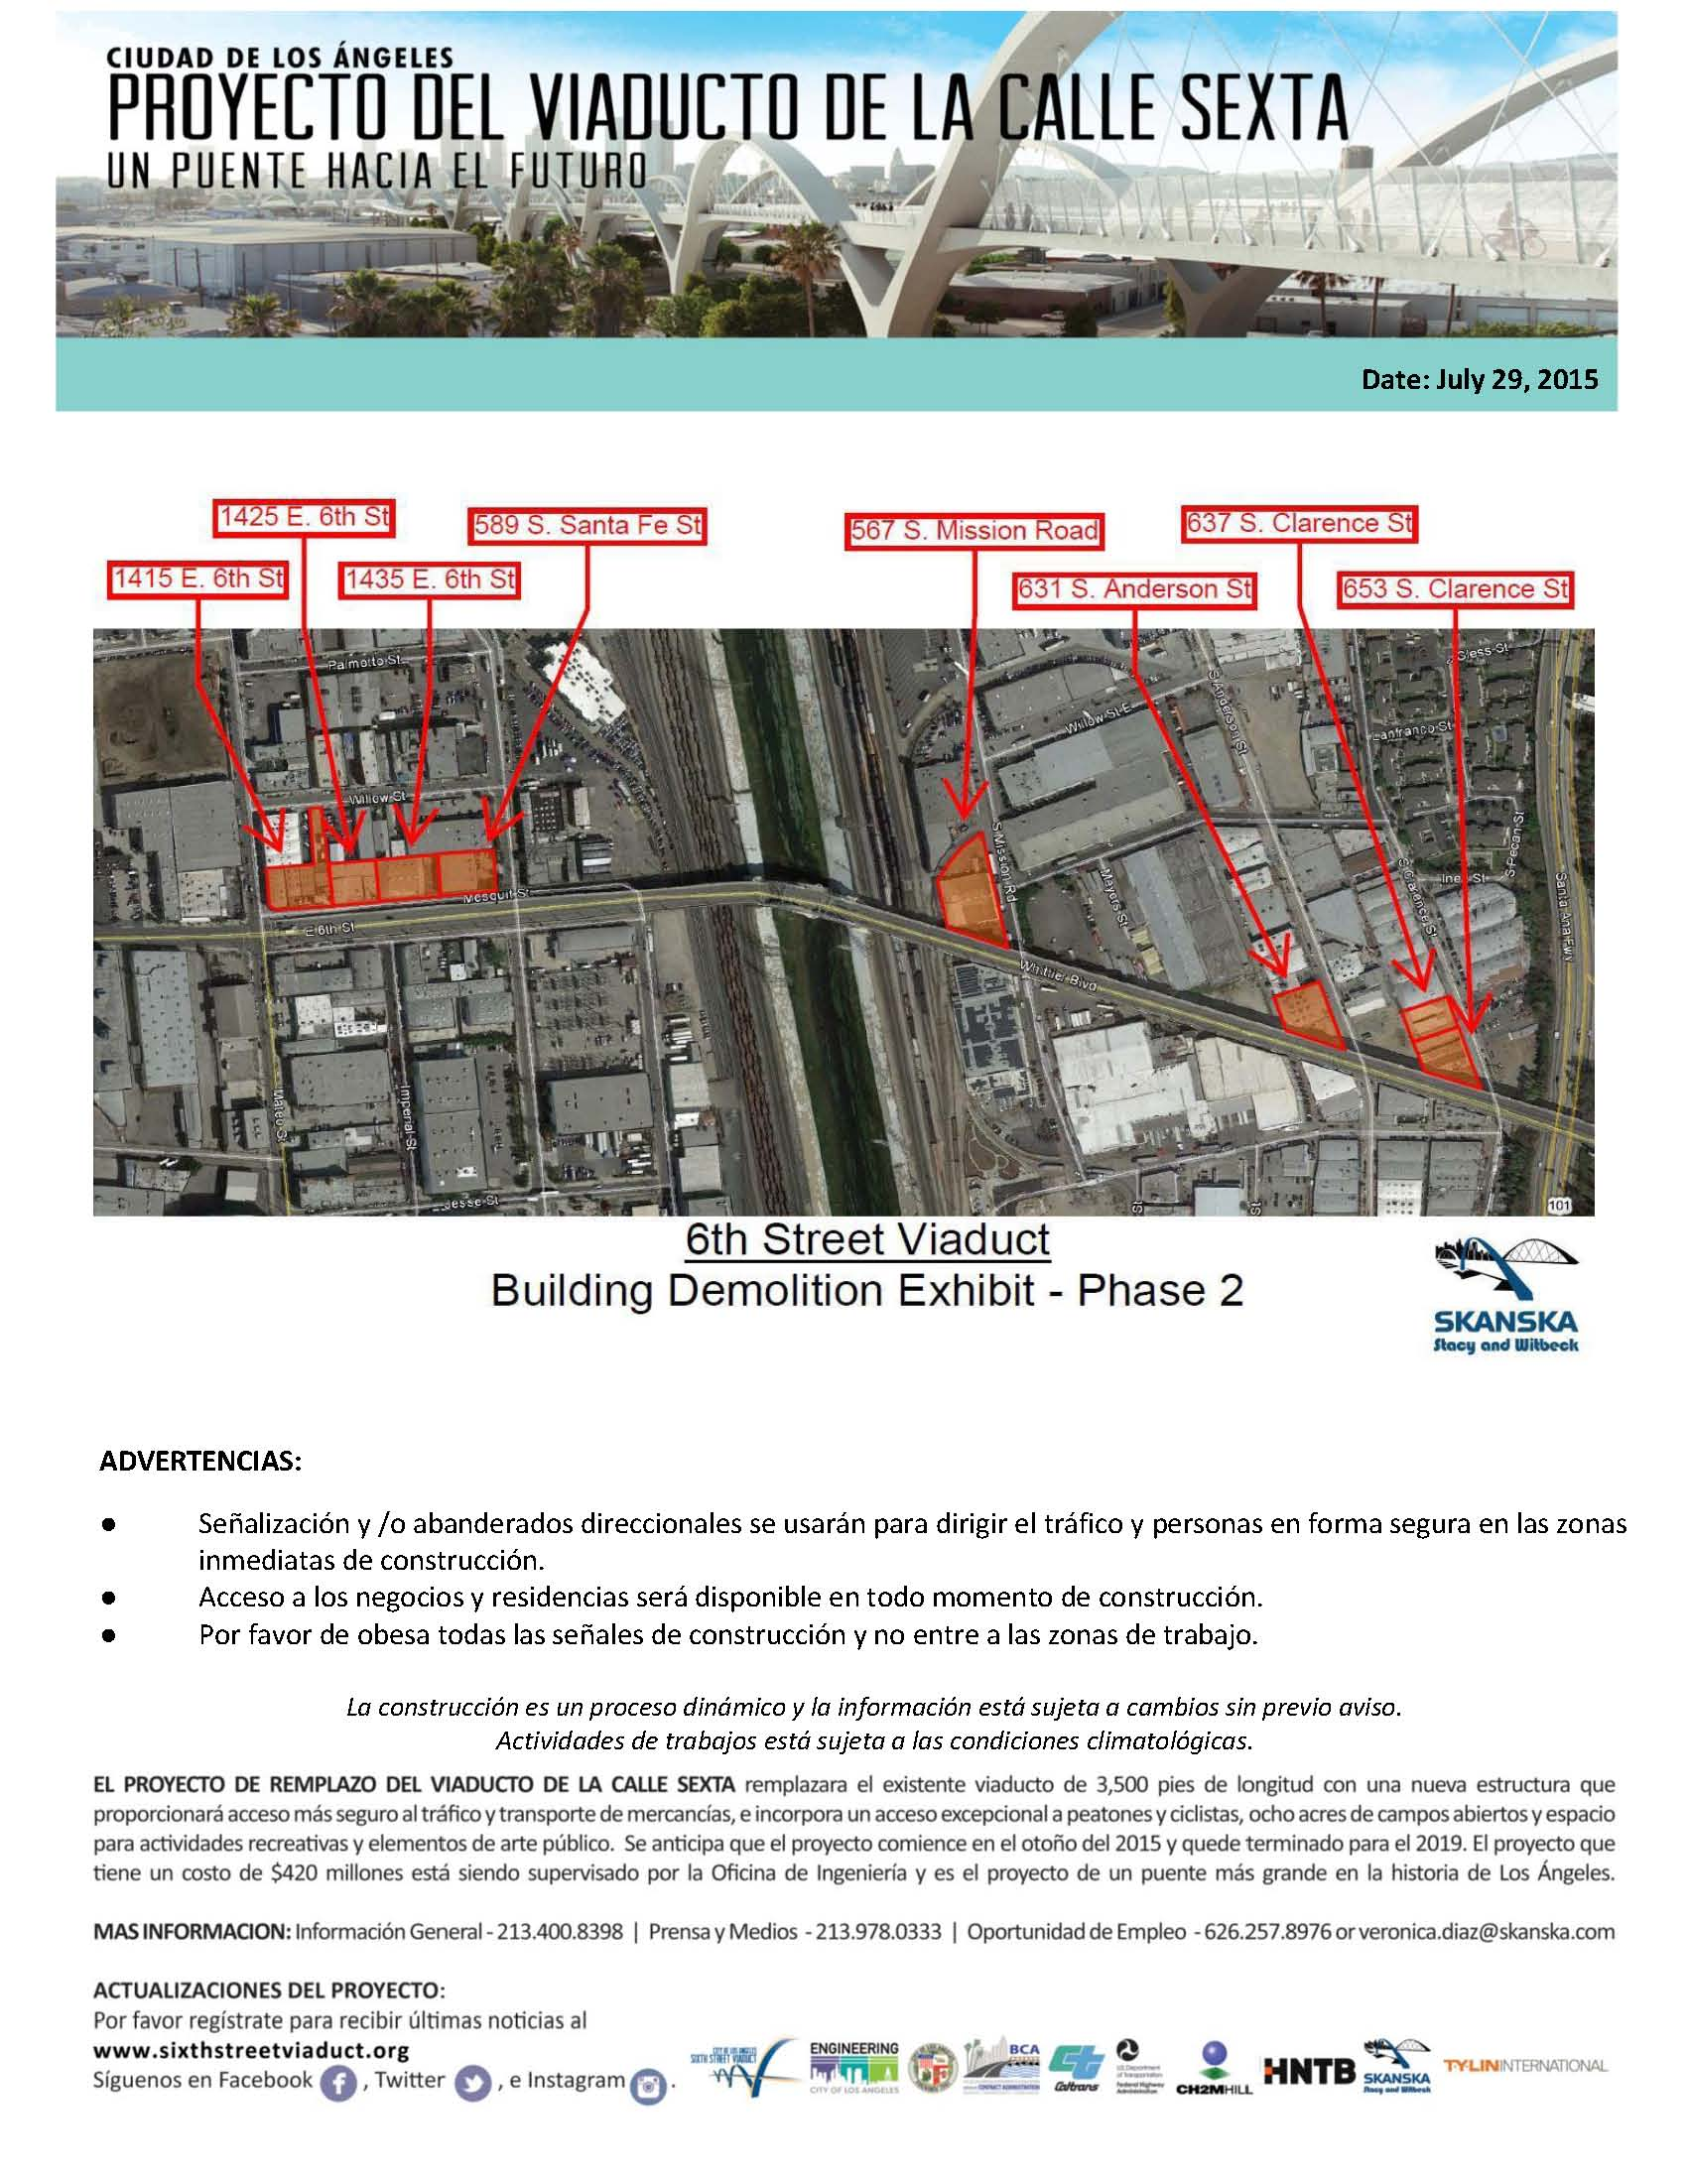 20150727_DRAFT_6thSt.ConstrctionNotice-BuildingDemolition_Spanish-_revision_Page_2.jpg